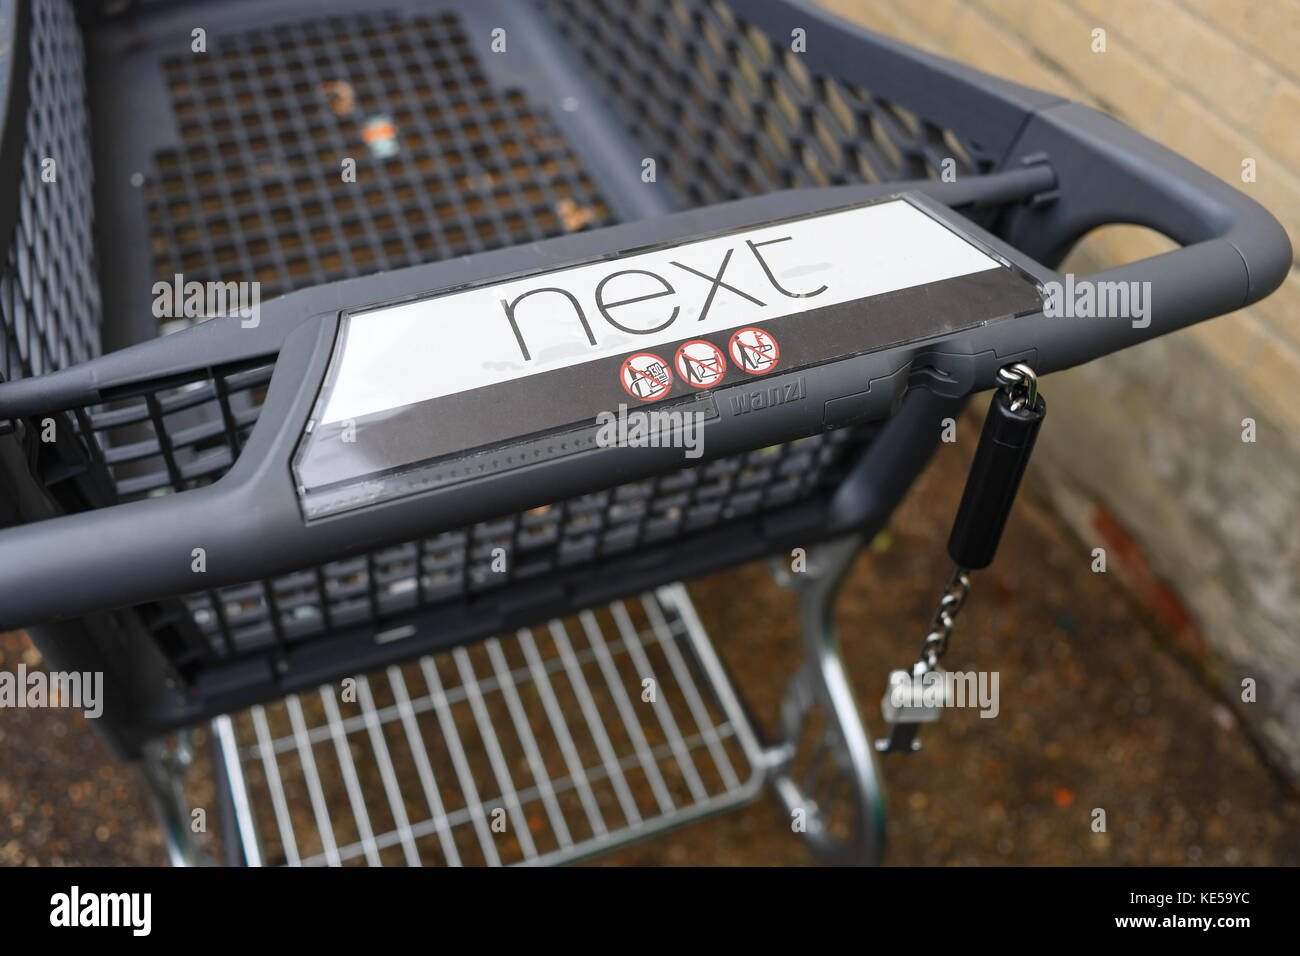 Shopping trolley from Next with pound coin lock attachment - Stock Image